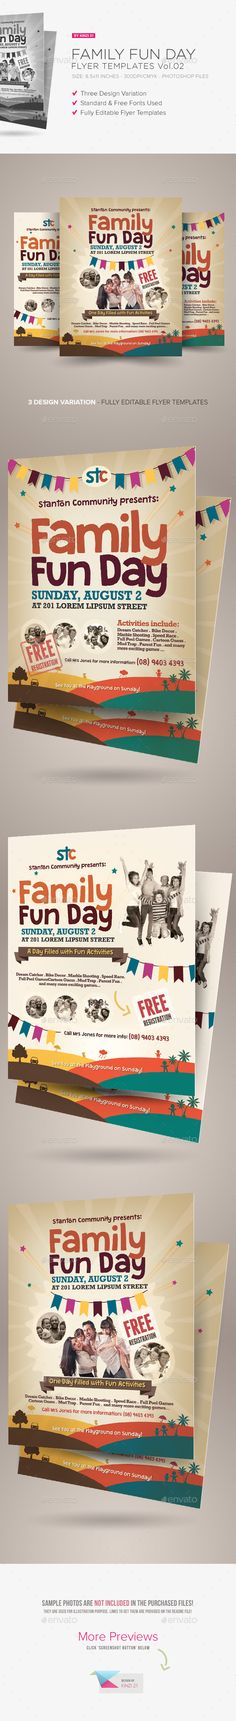 Family Fun Day Flyers Vol.02 are design templates created for sale on Graphic River. More info of the templates and how to get the sourcefiles can be found on this page: http://graphicriver.net/item/family-fun-day-flyers-vol02/8972453?r=kinzi21